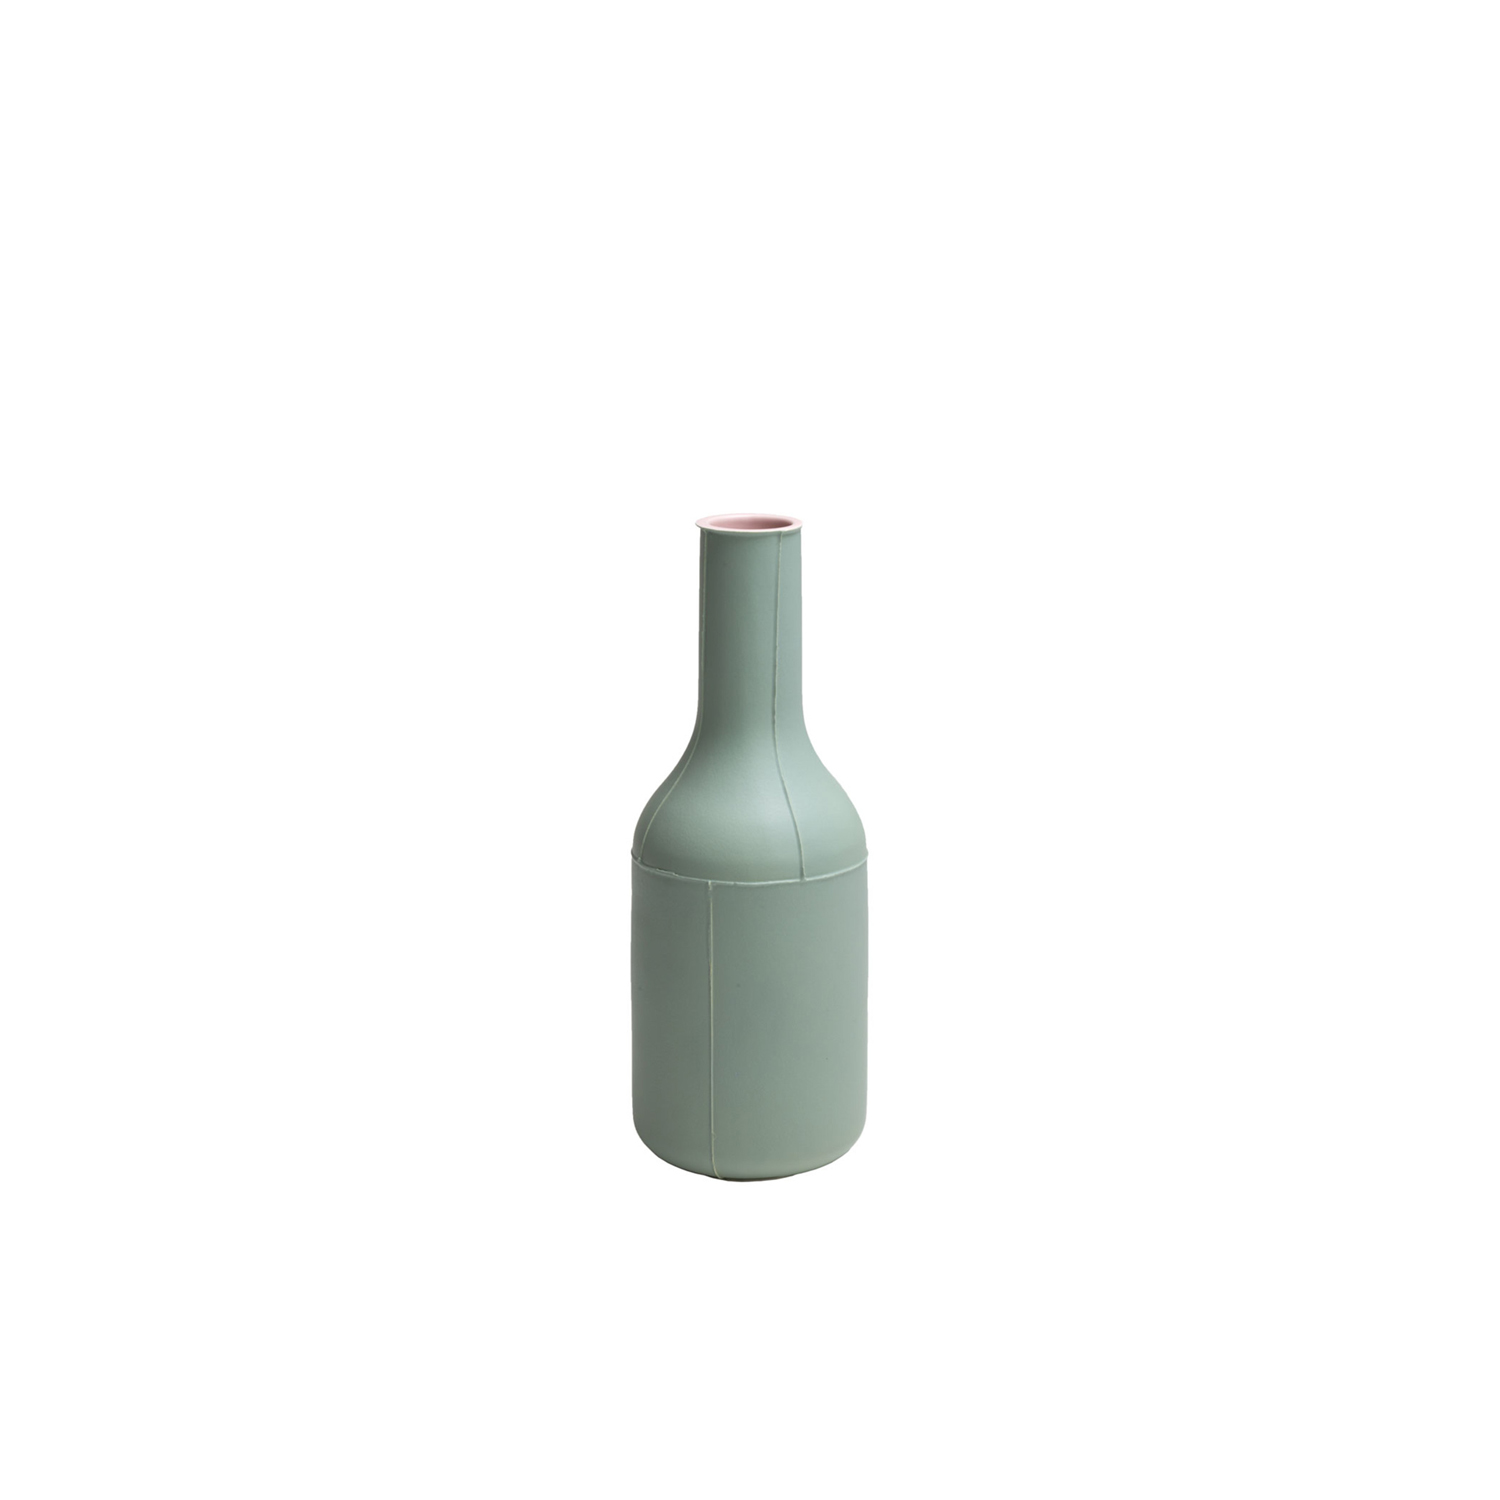 Green Bottle Vase - Bottle vase. Cast in white clay. Two-tone matt glaze, pink on the inside and green on the outside.